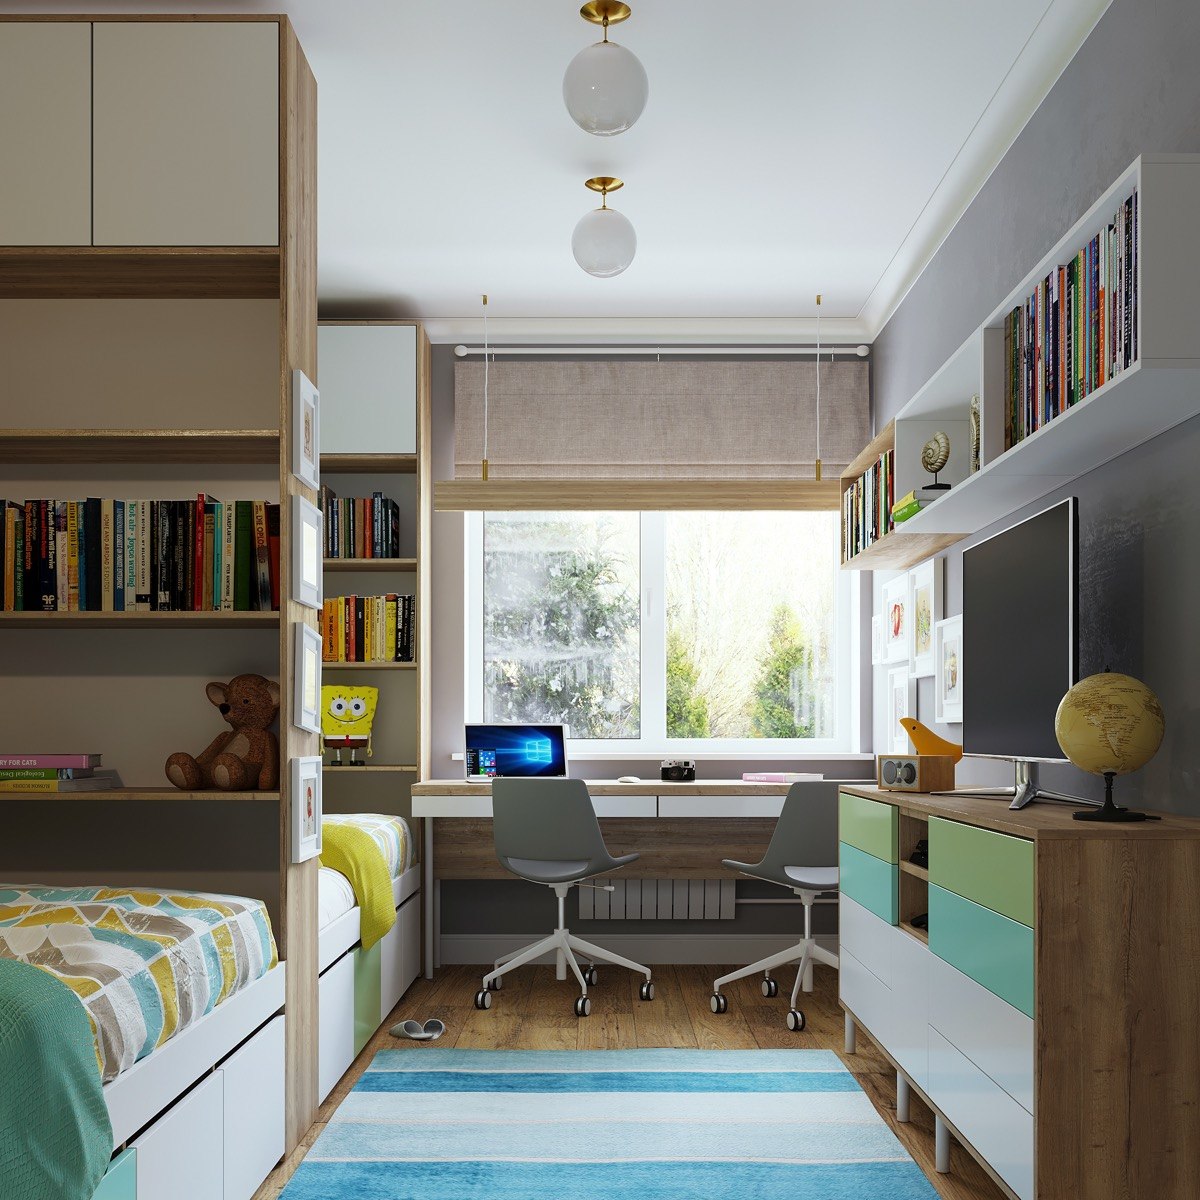 53 Inspirational Kids' Study Space Designs And Tips You